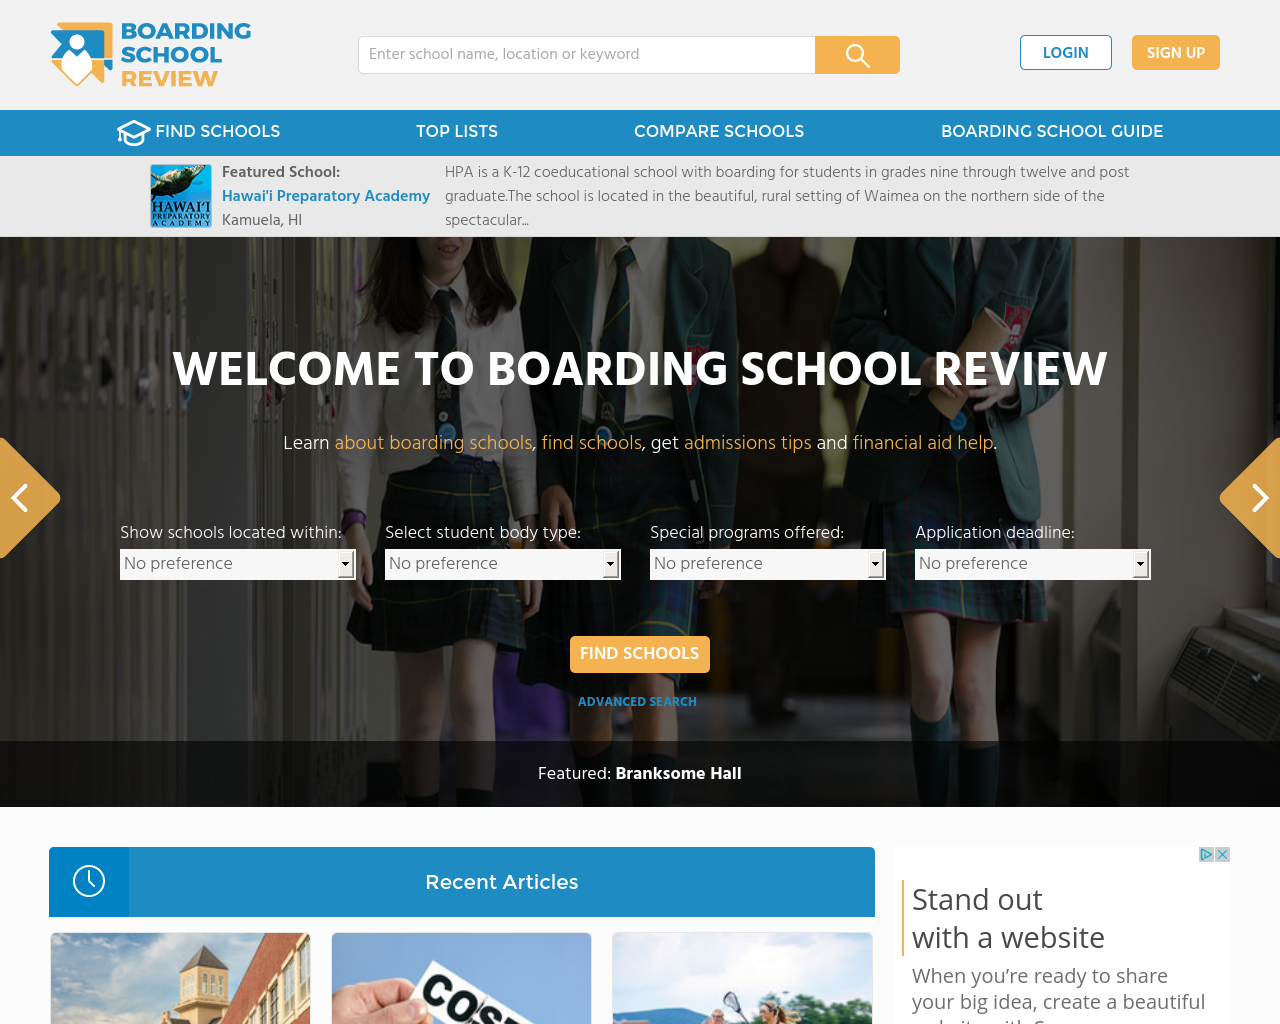 Boarding-School-Review-Advertising-Reviews-Pricing